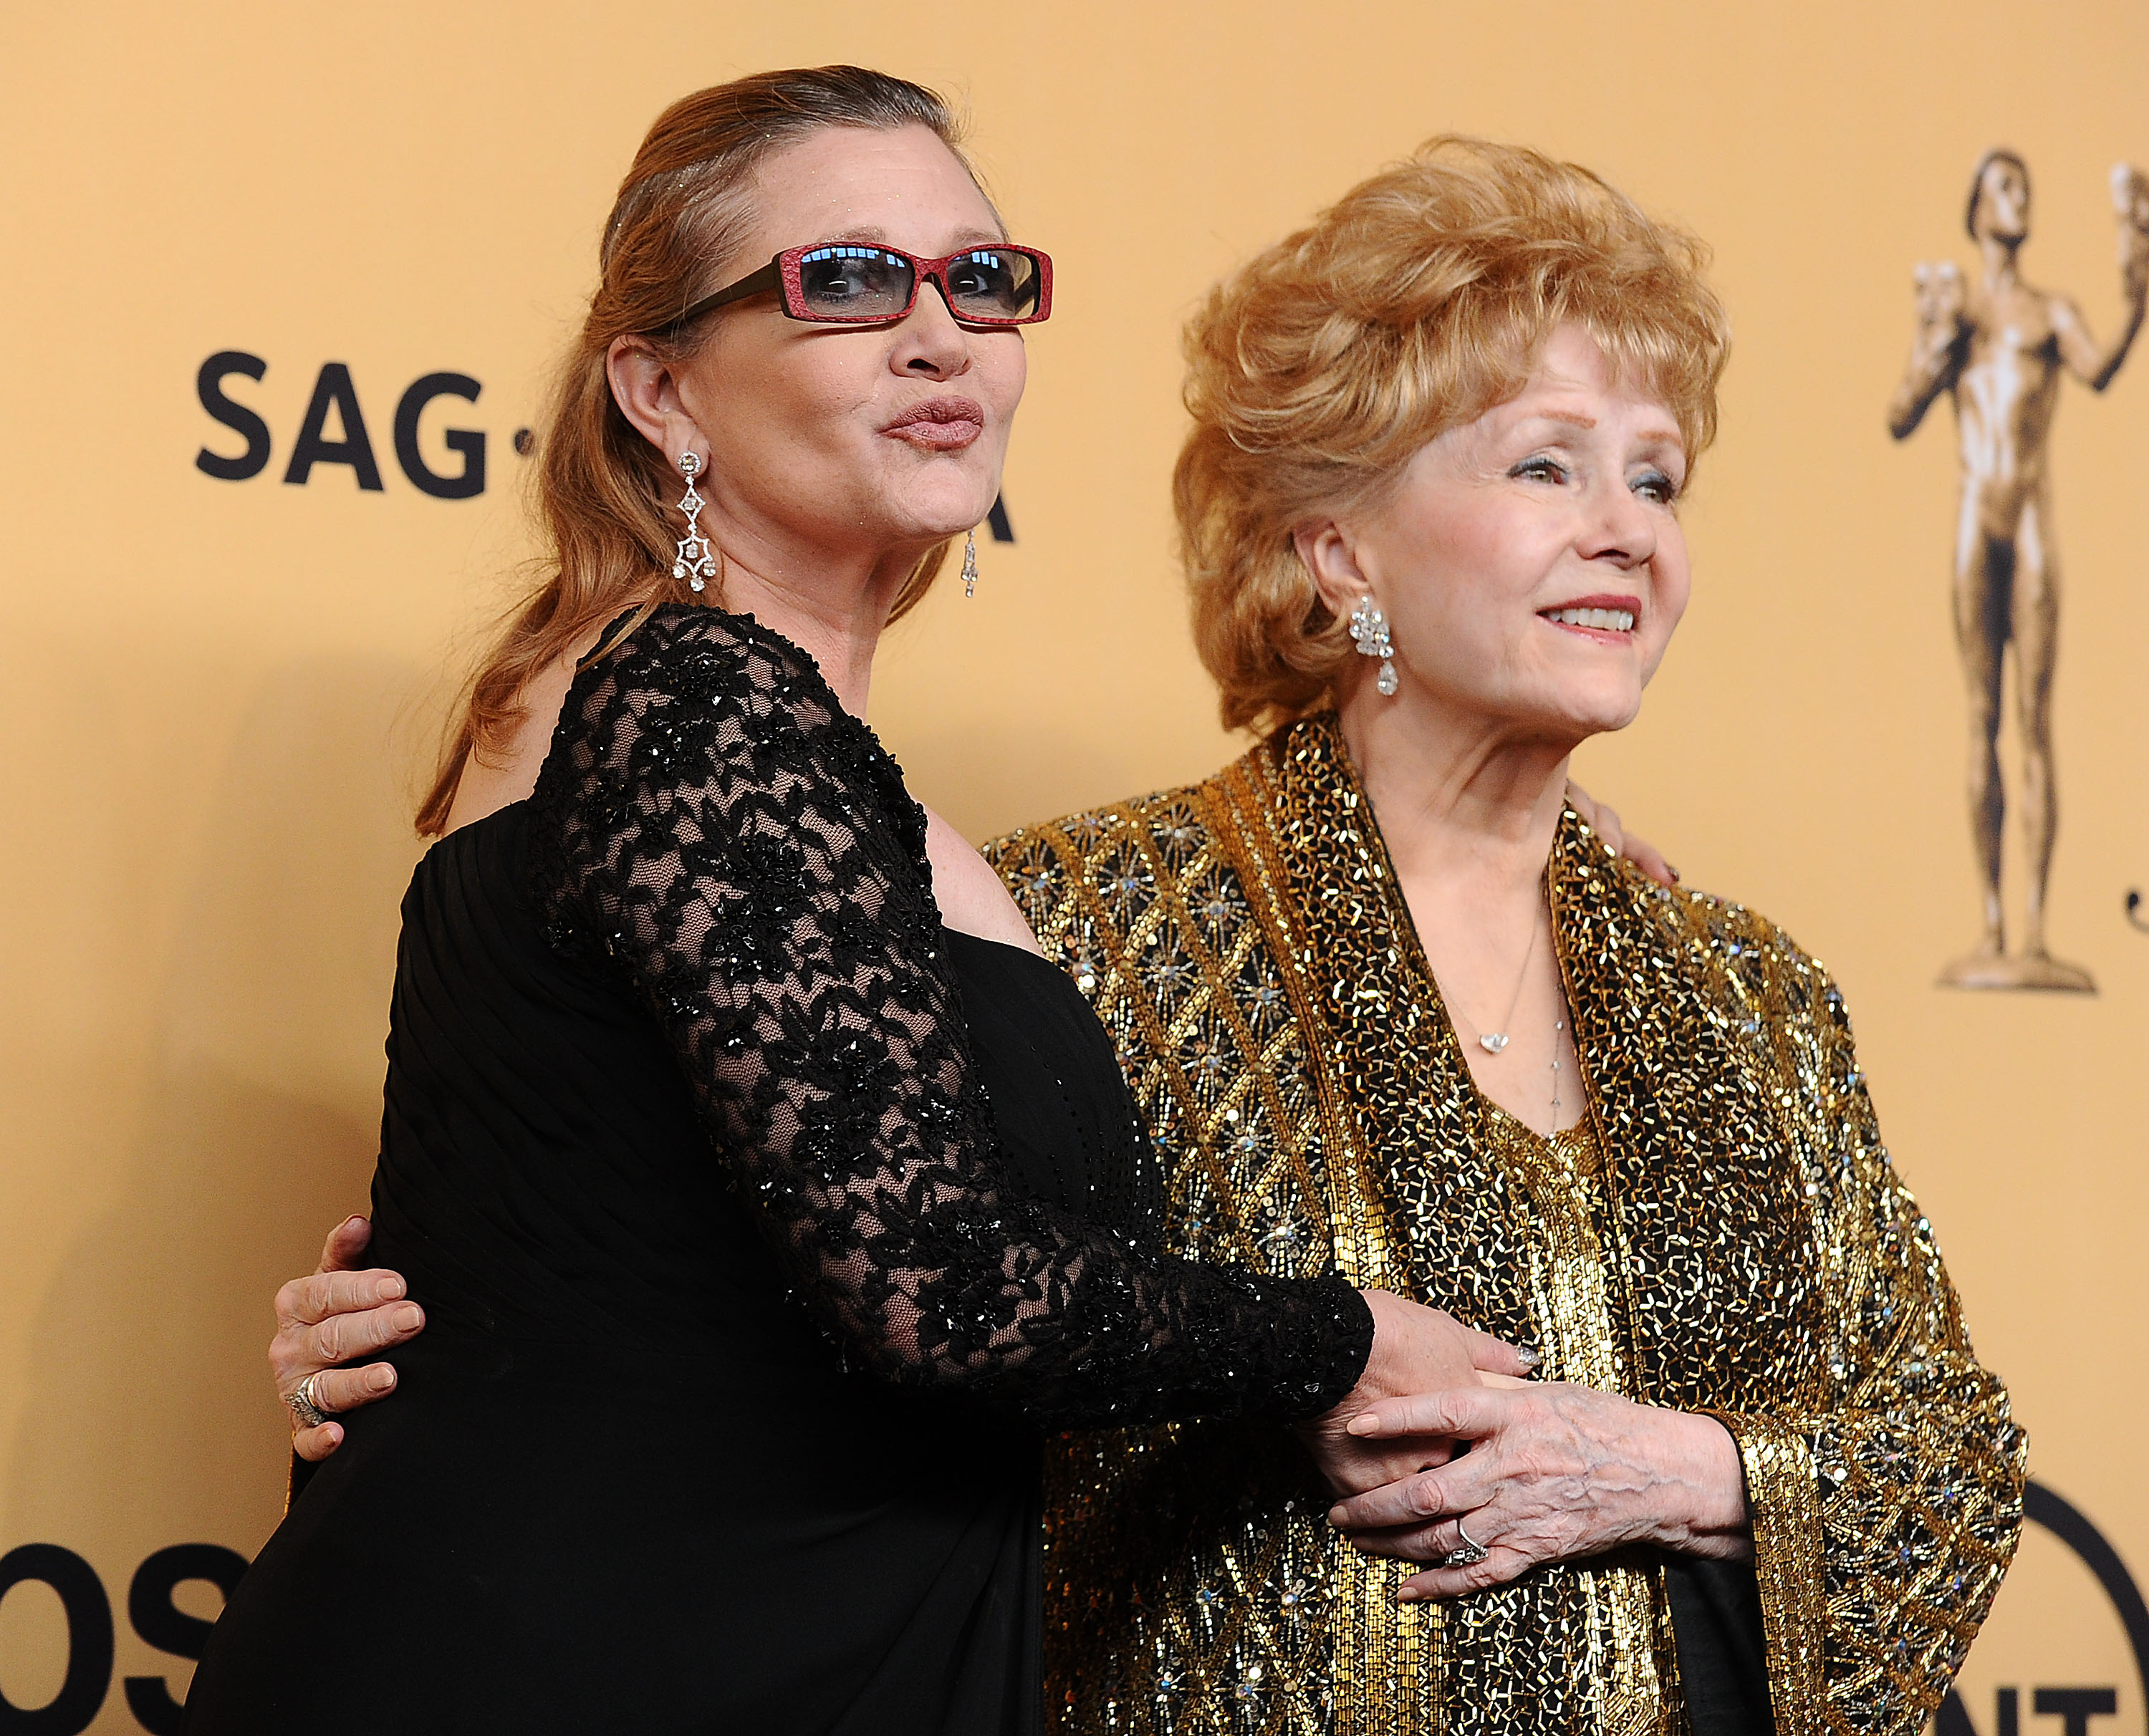 Actresses Debbie Reynolds and Carrie Fisher pose in the press room at the 21st annual Screen Actors Guild Awards at The Shrine Auditorium on January 25, 2015 in Los Angeles, California.